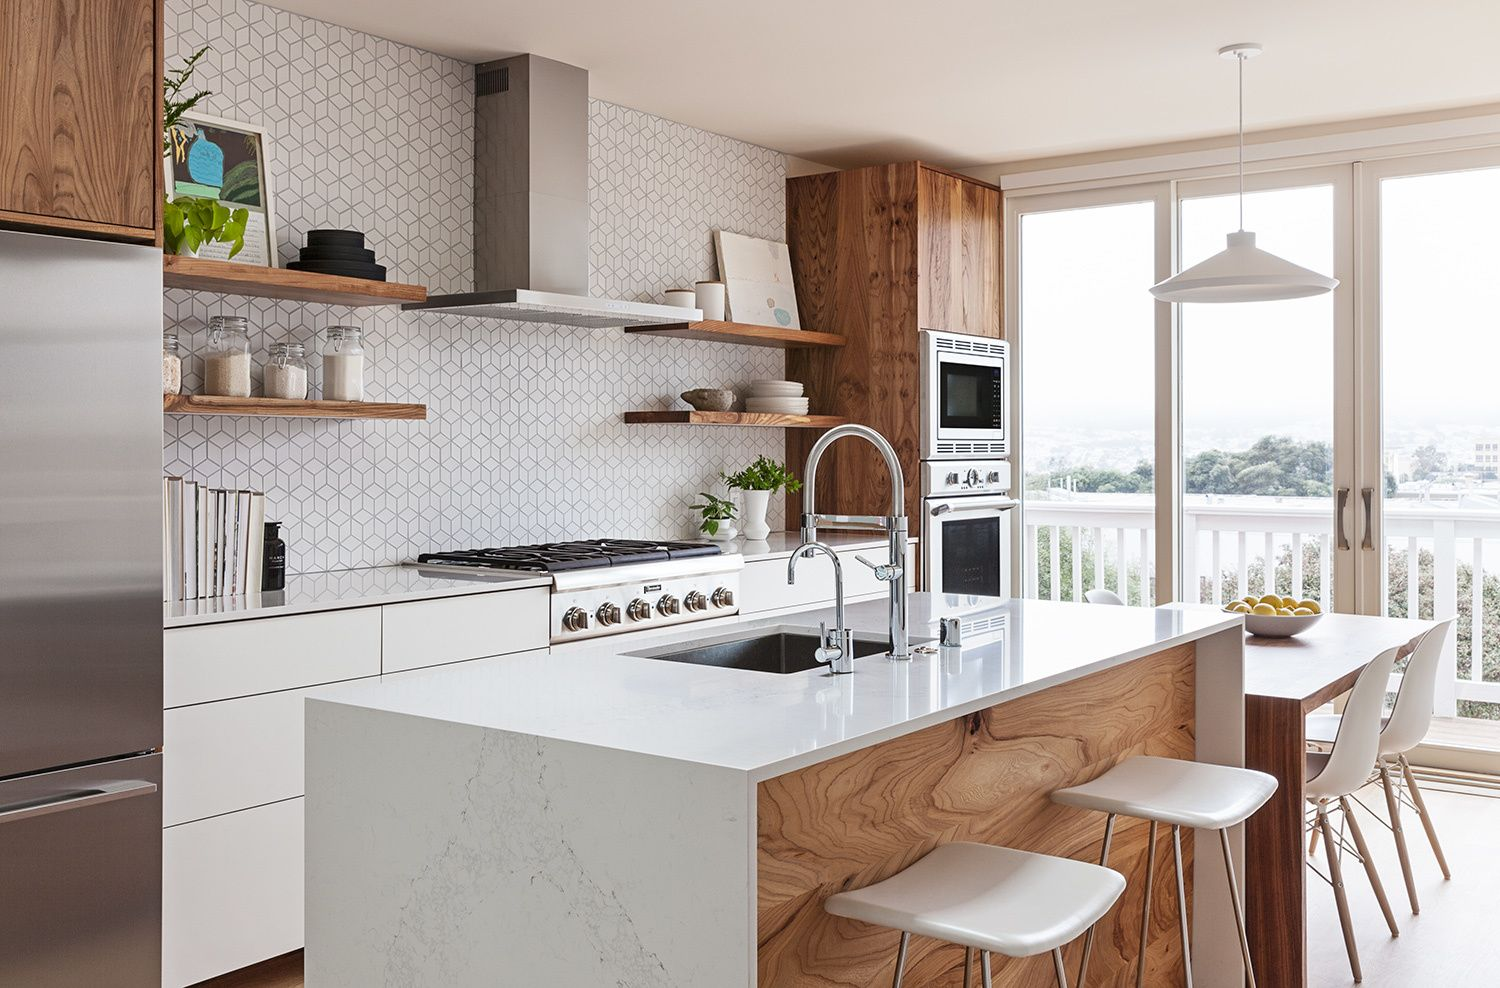 Los palmos by svk interior design shelves storage and kitchens